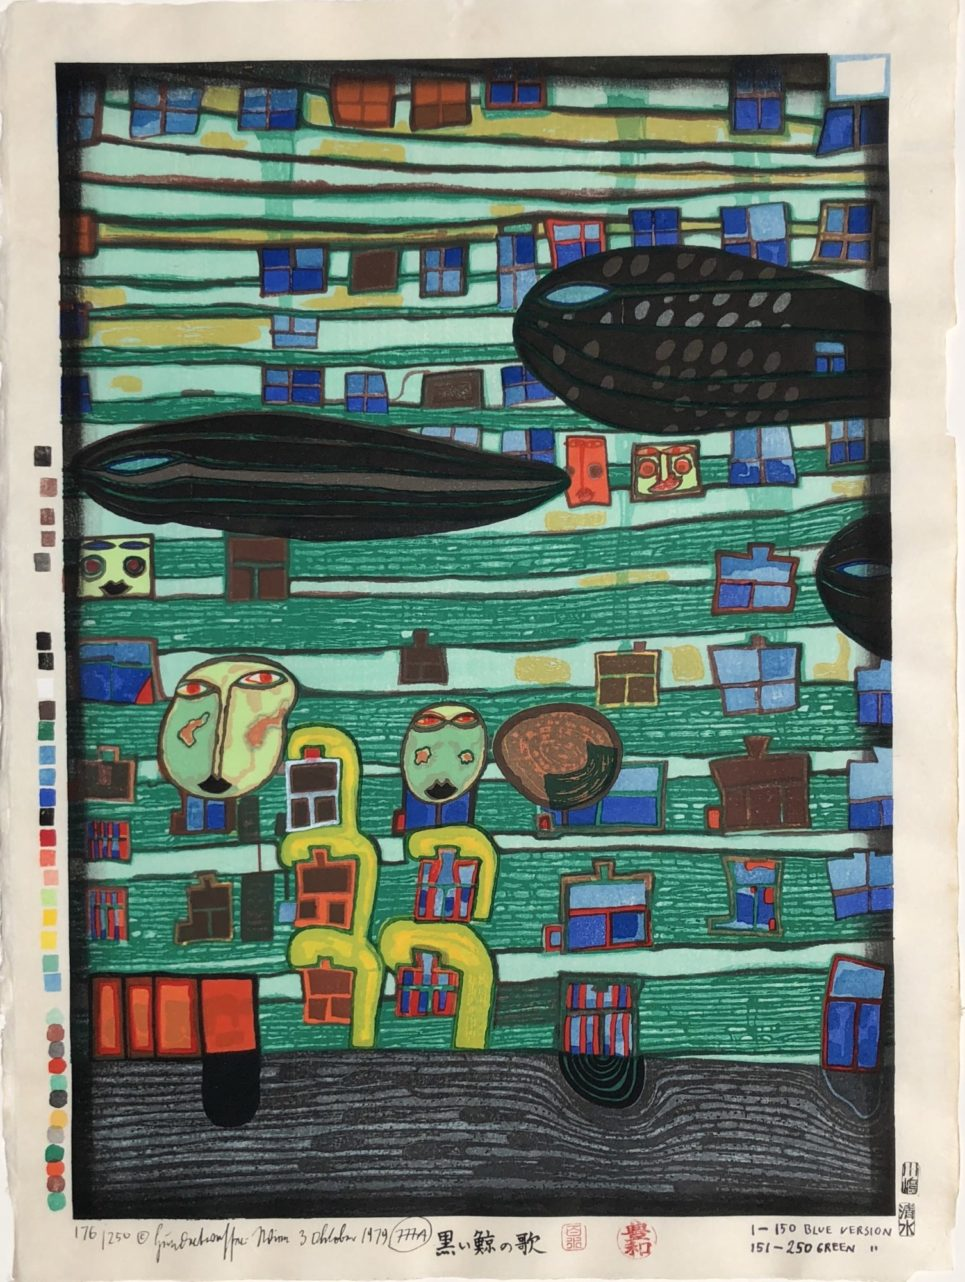 Friedensreich Hundertwasser Song of the Whales